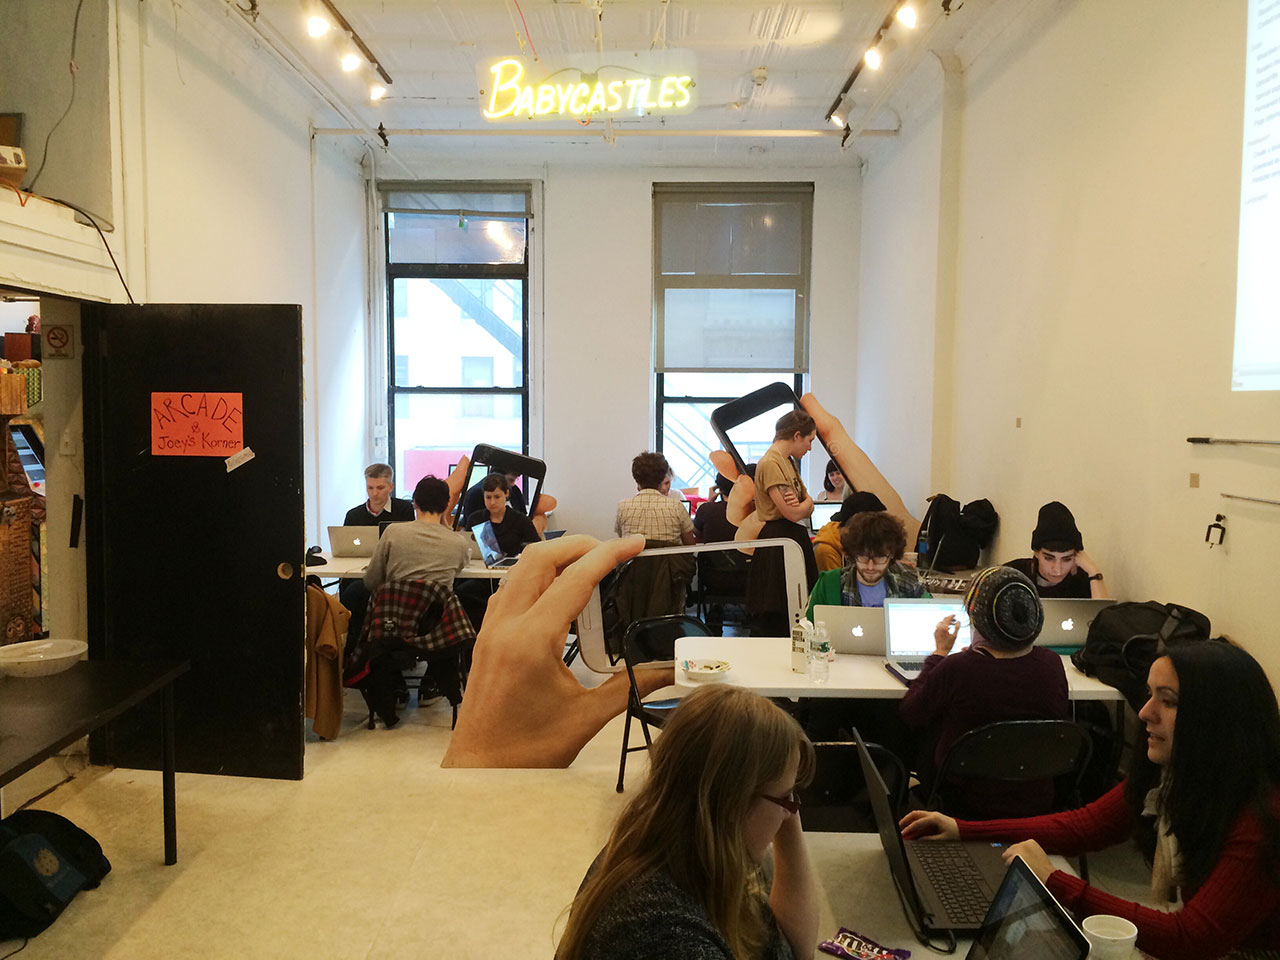 The Art+Feminism 2015 Wikipedia Edit-a-thon at Babycastles (all photos by the author unless otherwise noted)